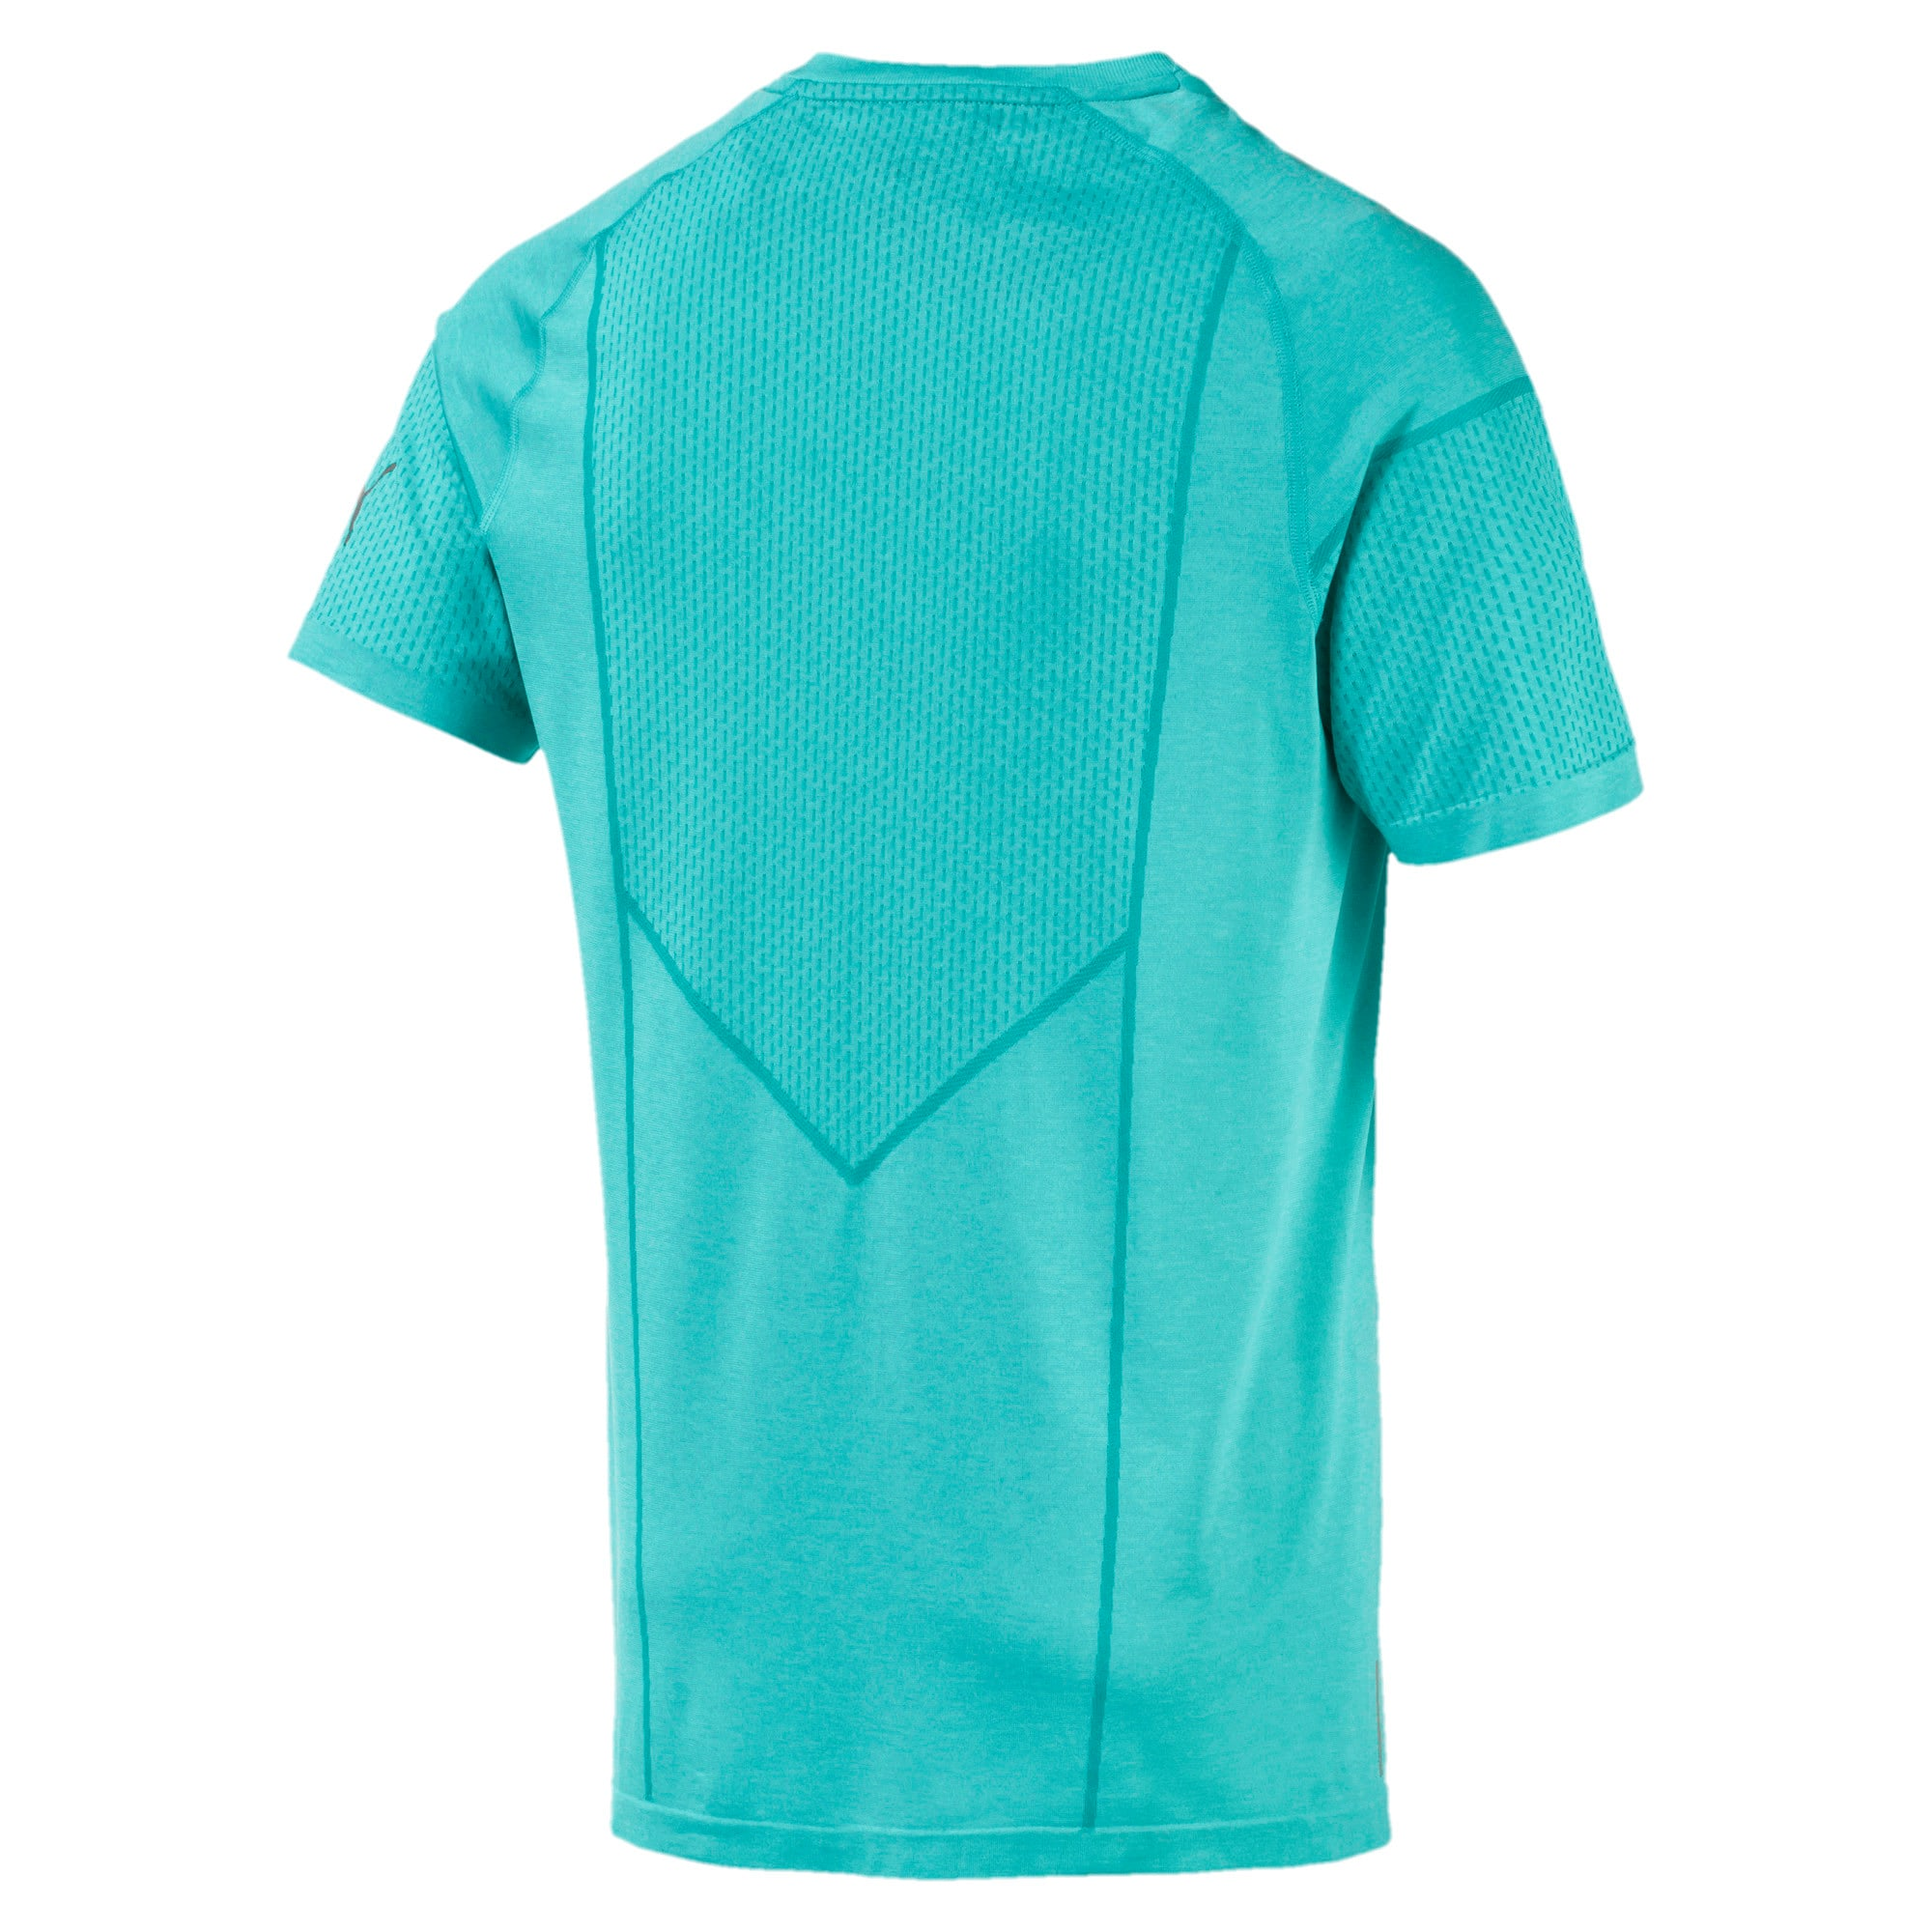 Thumbnail 5 of Reactive evoKNIT Men's Tee, Blue Turquoise Heather, medium